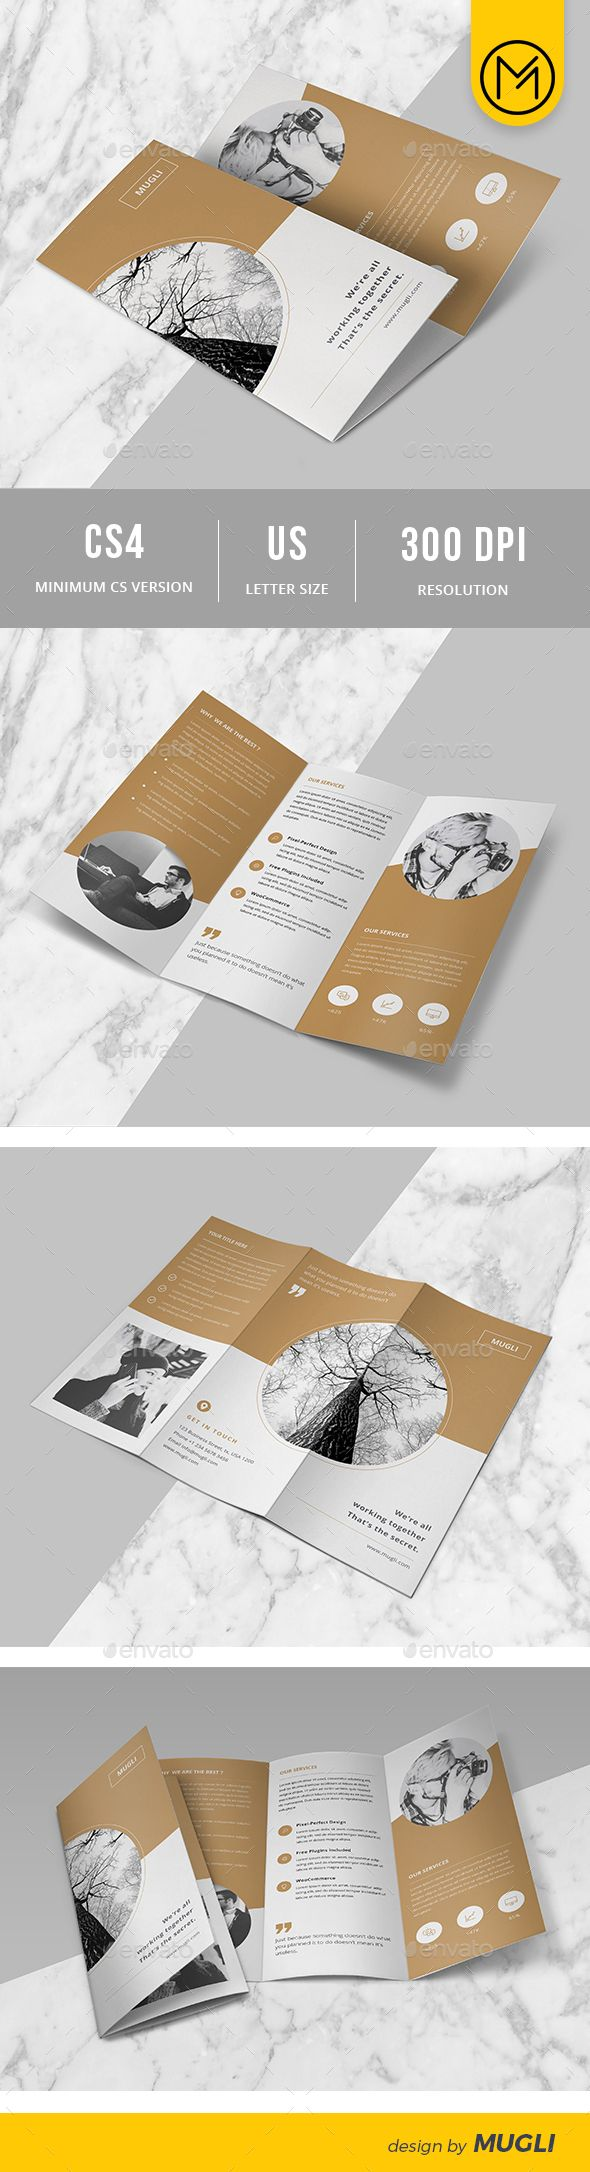 Trifold Brochure — InDesign INDD #marketing #3 fold • Available here → gra...